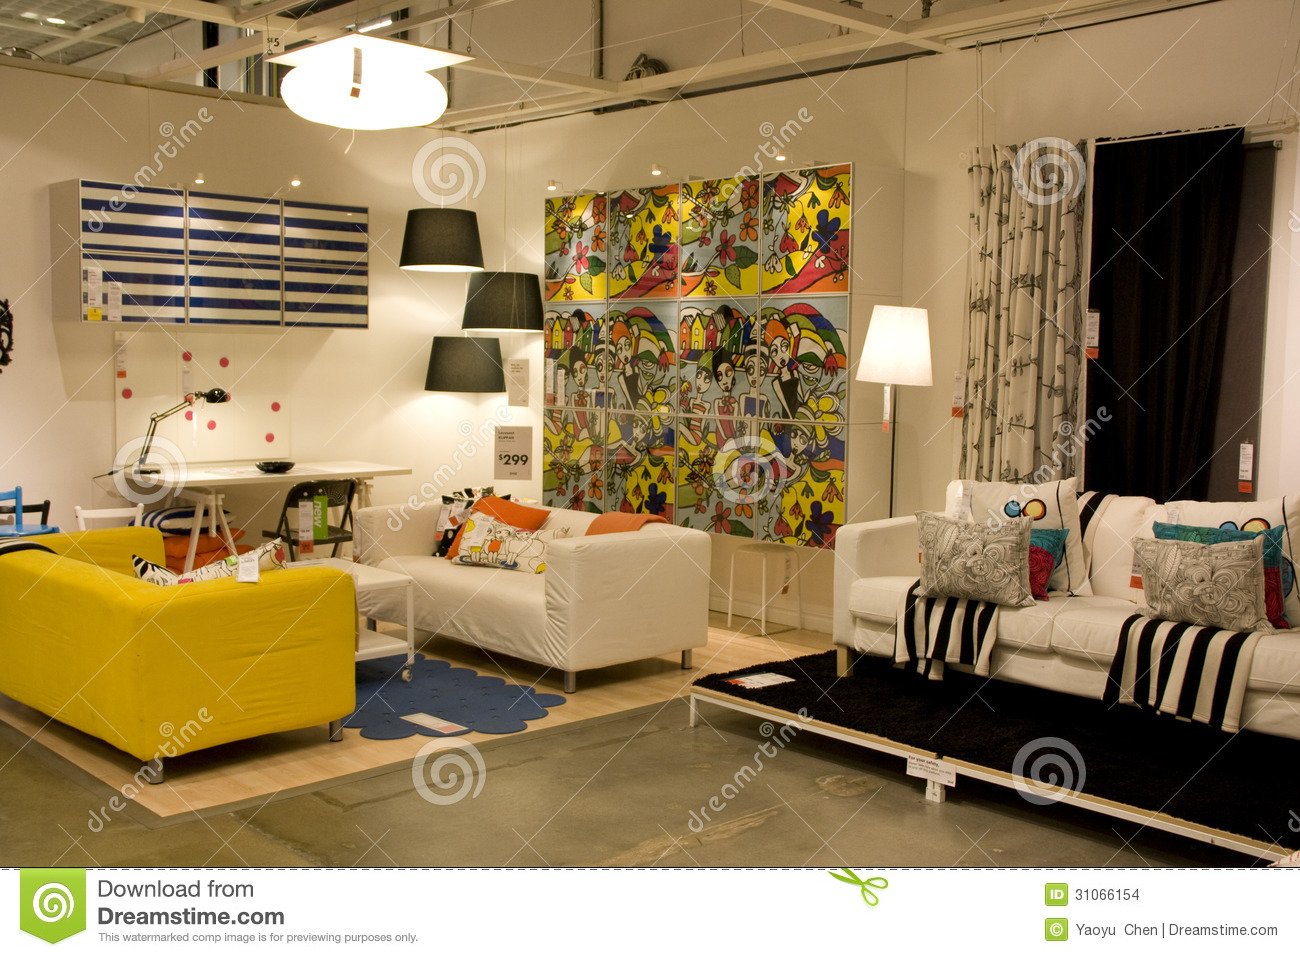 Living room furniture store editorial stock image image for Living room furniture stores